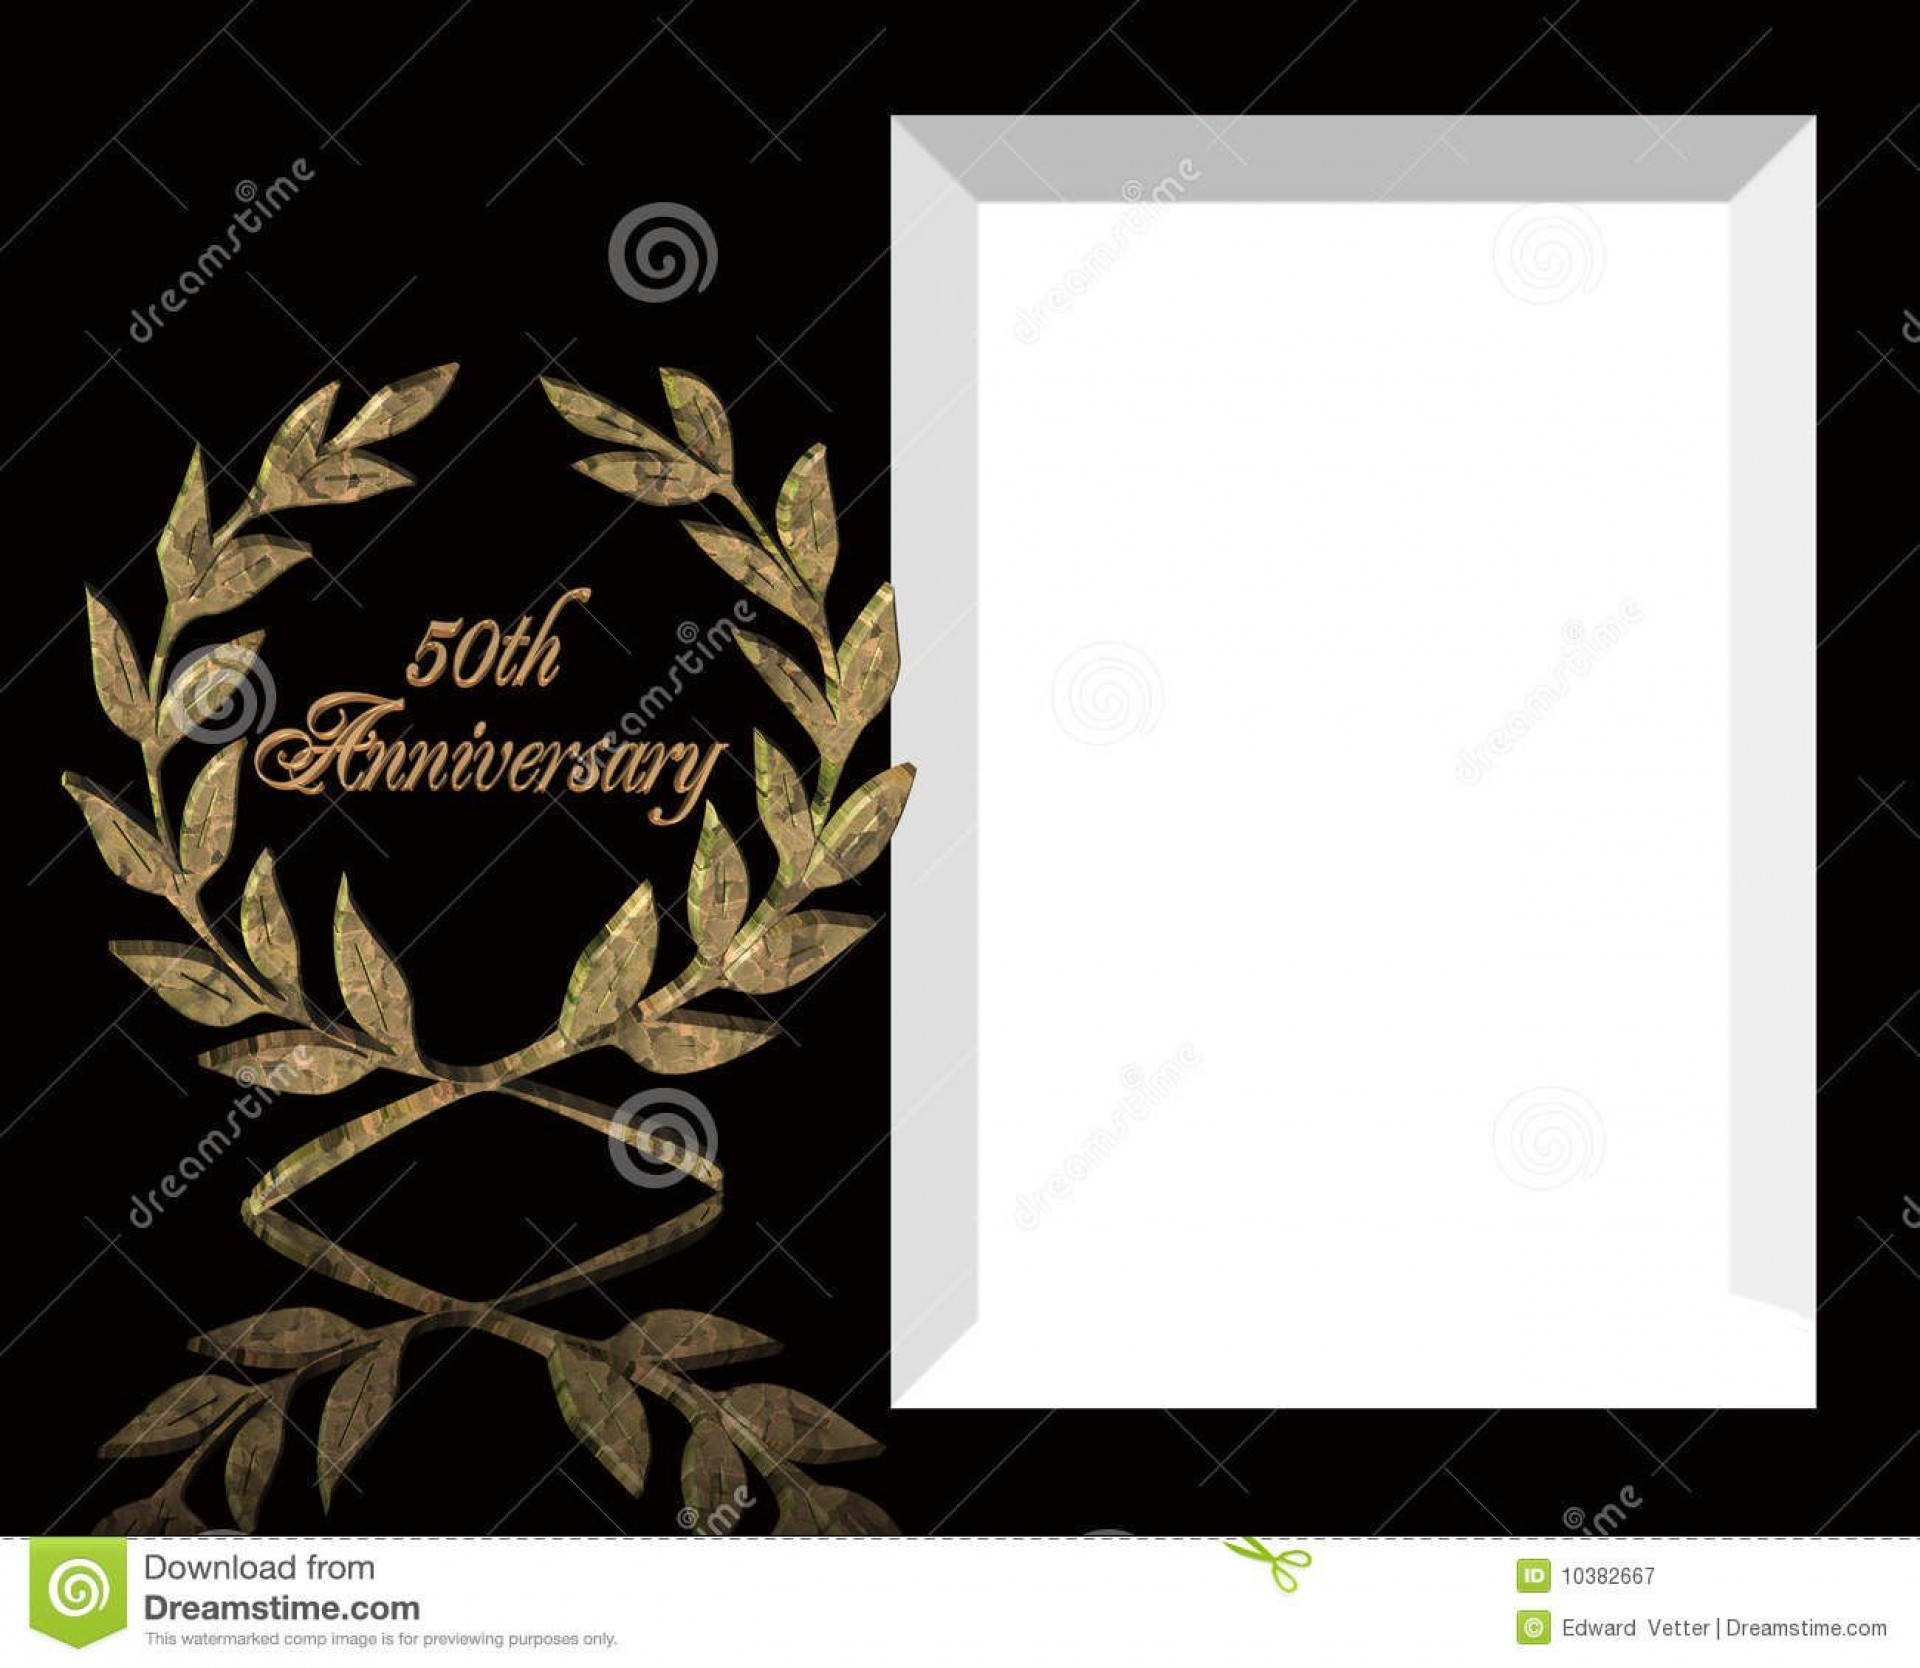 005 Exceptional 50th Anniversary Invitation Template Image  Wedding Microsoft Word Free Download1920